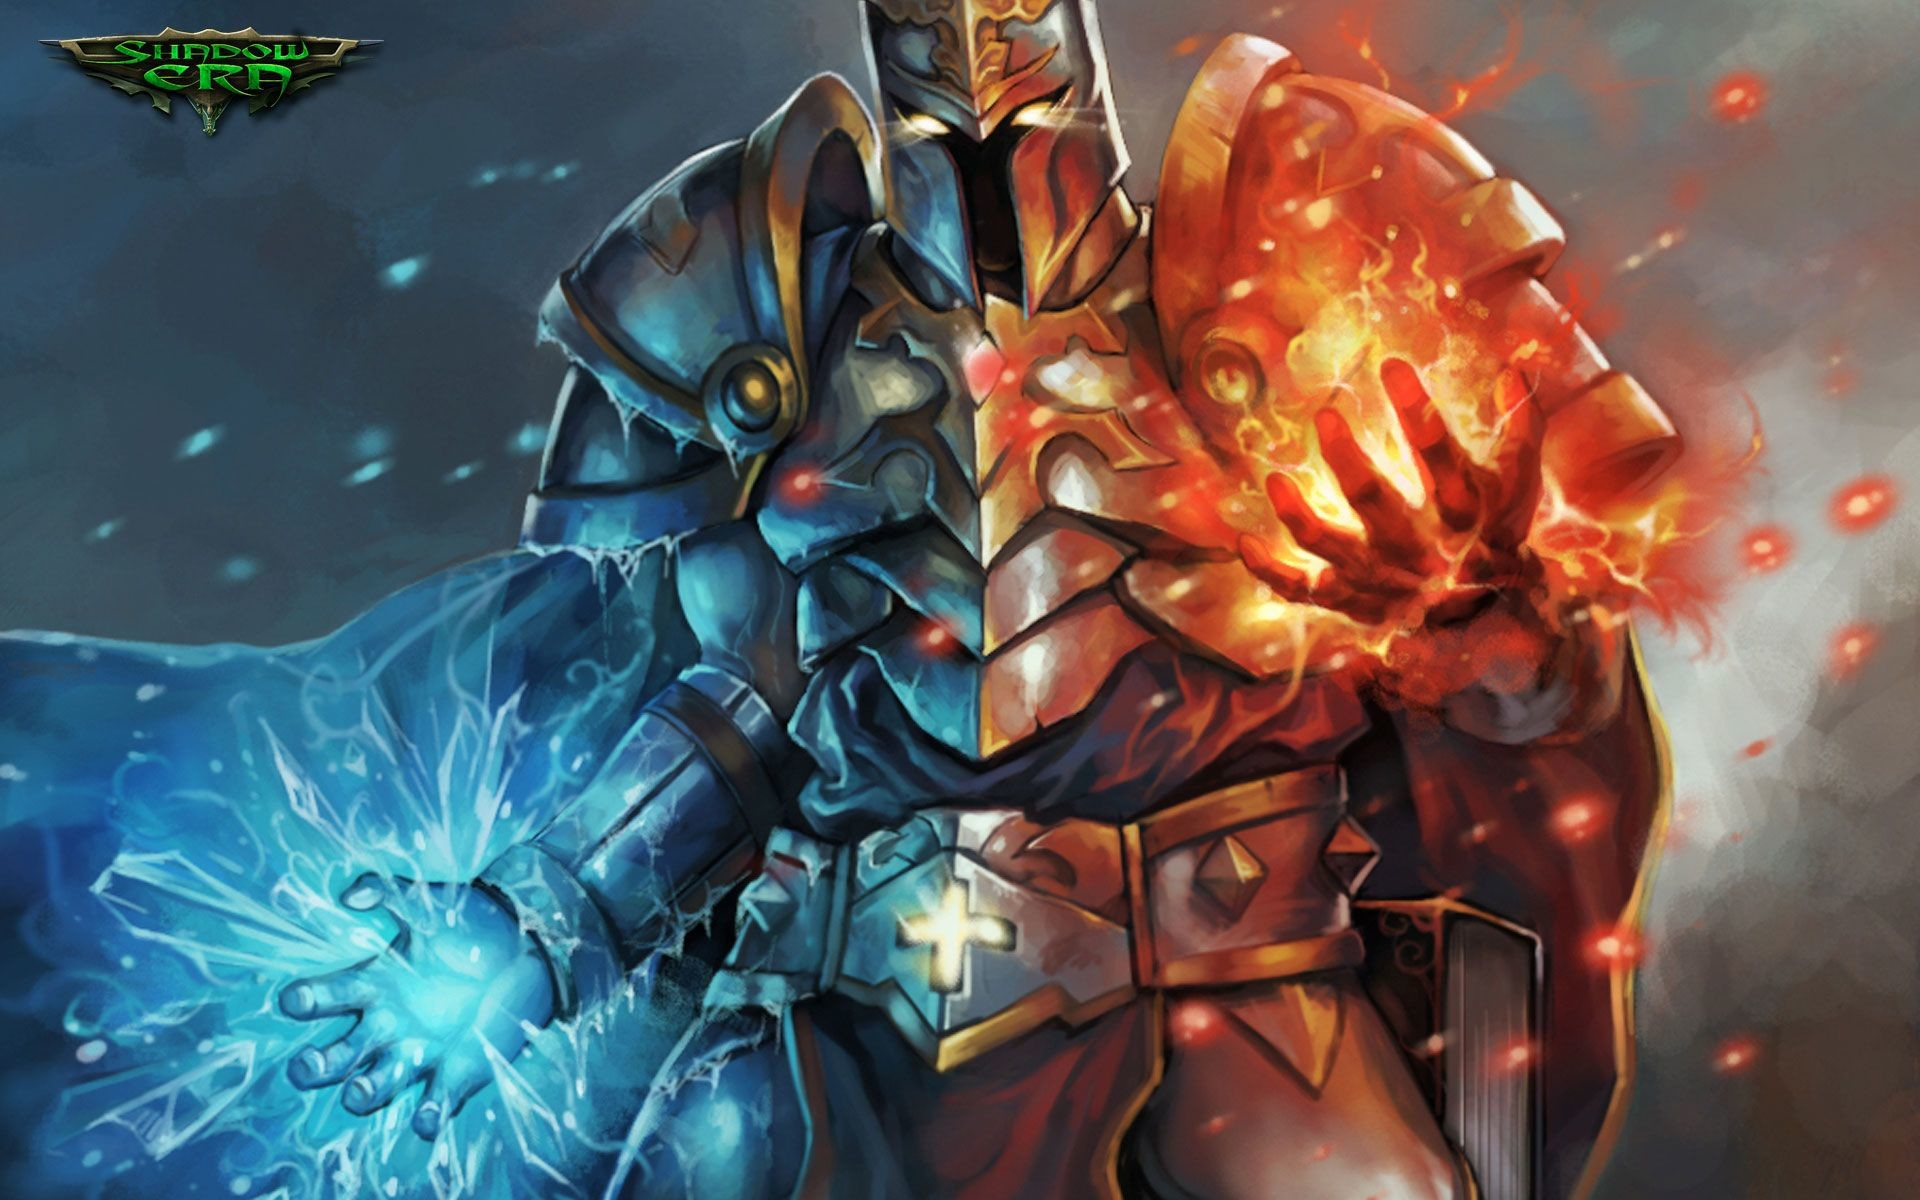 1920x1200 Paladin of Unaxio desktop background from Shadow Era trading card game  Wallpaper Gallery, Paladin,